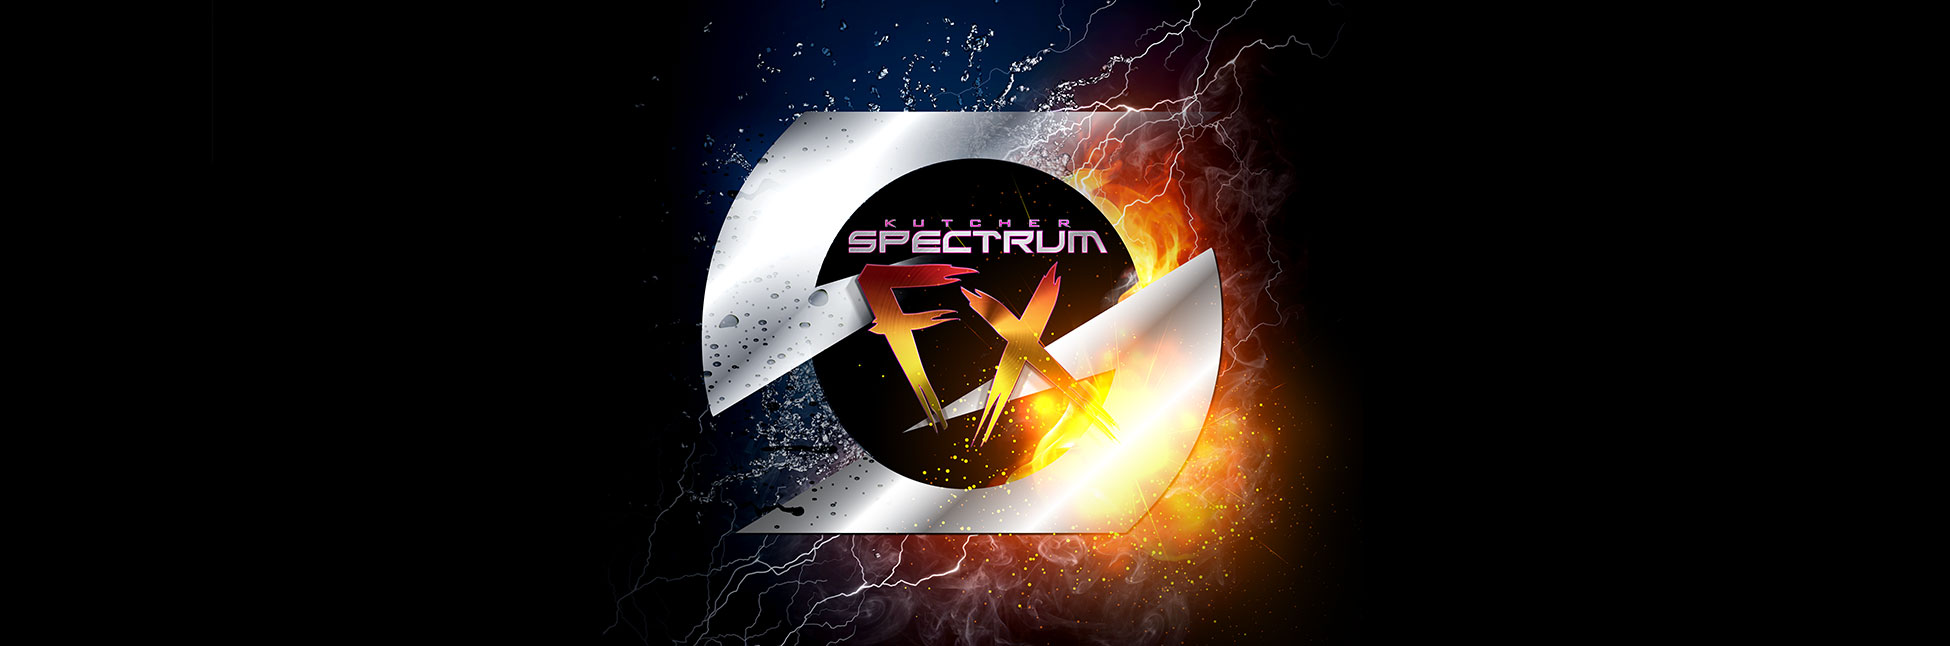 special effects branding